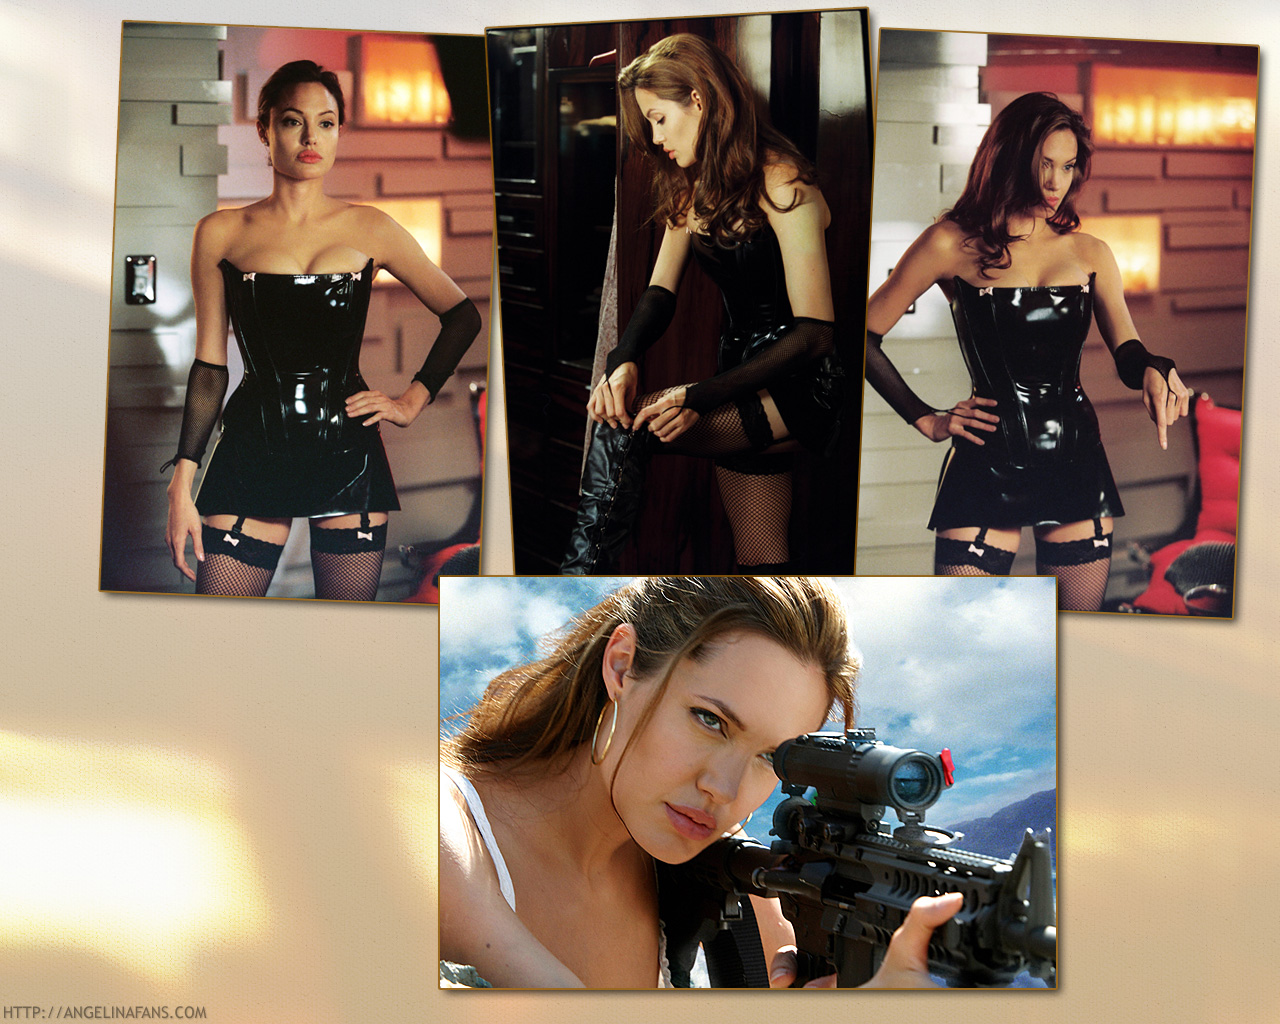 Mr. & Mrs. Smith - Angelina Jolie Wallpaper (741679) - Fanpop fanclubs ...